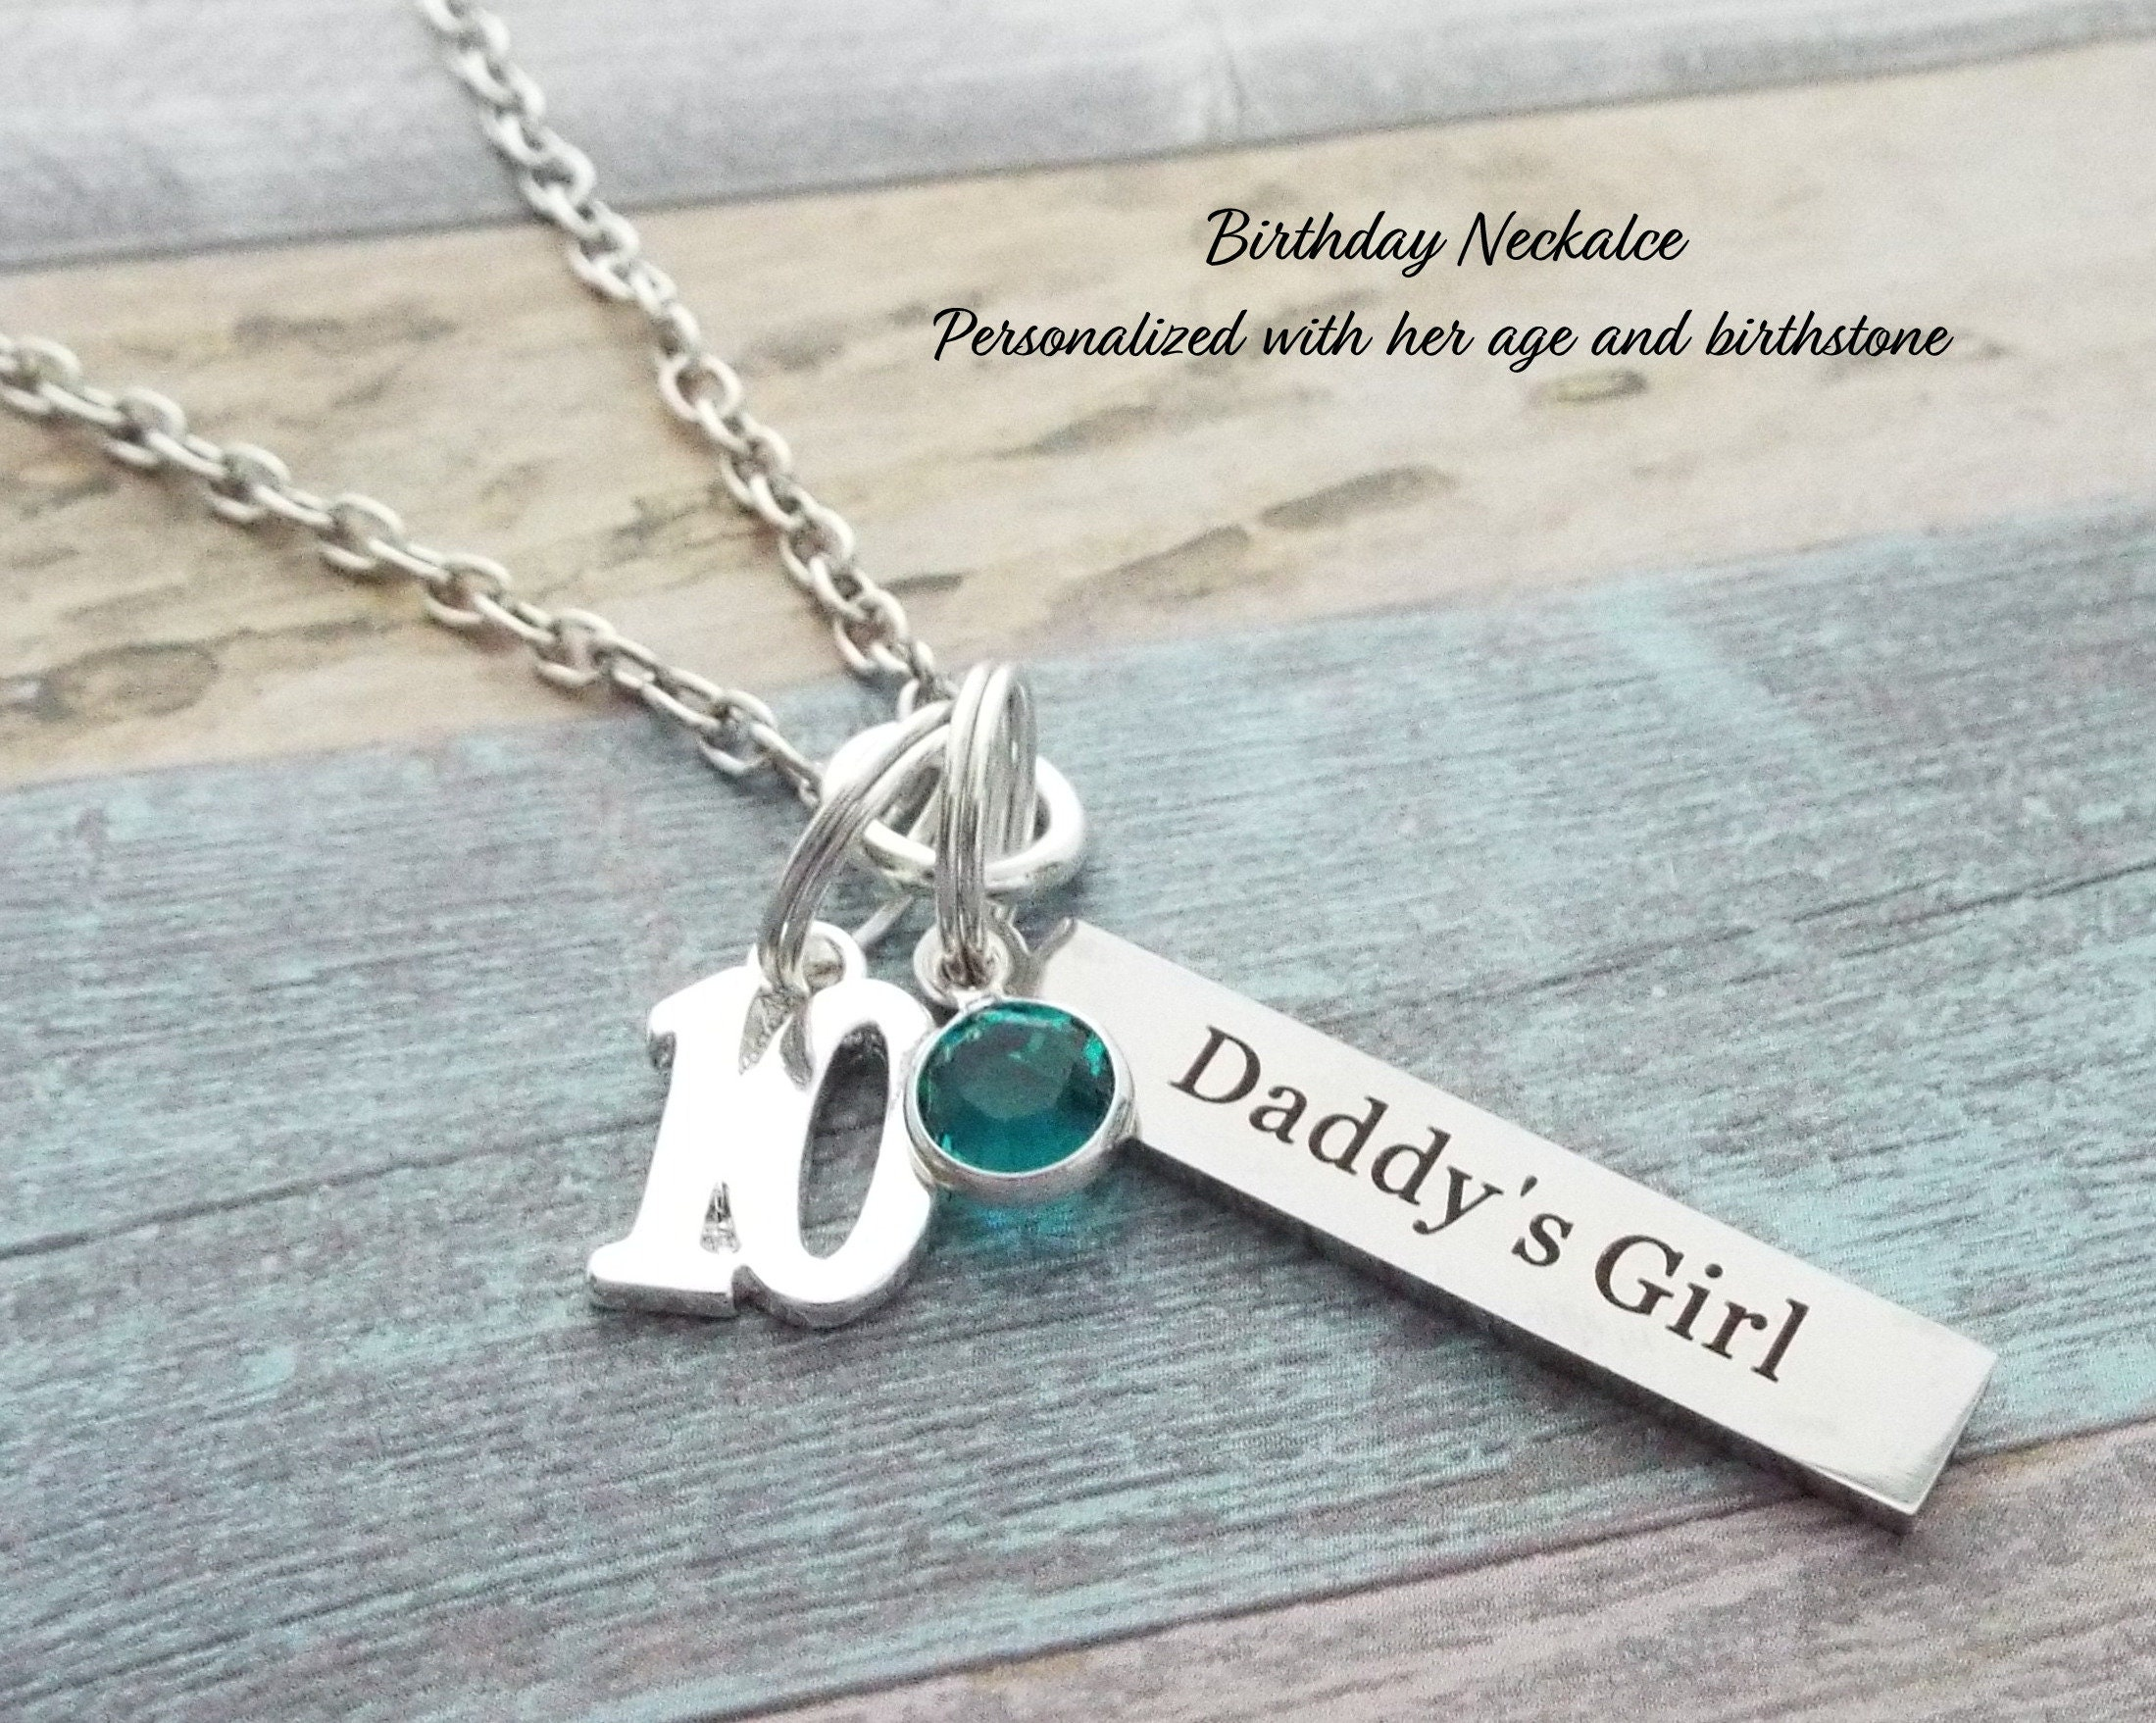 Birthday For Daughter Dad Gift Birthstone Jewelry Girl Gallery Photo